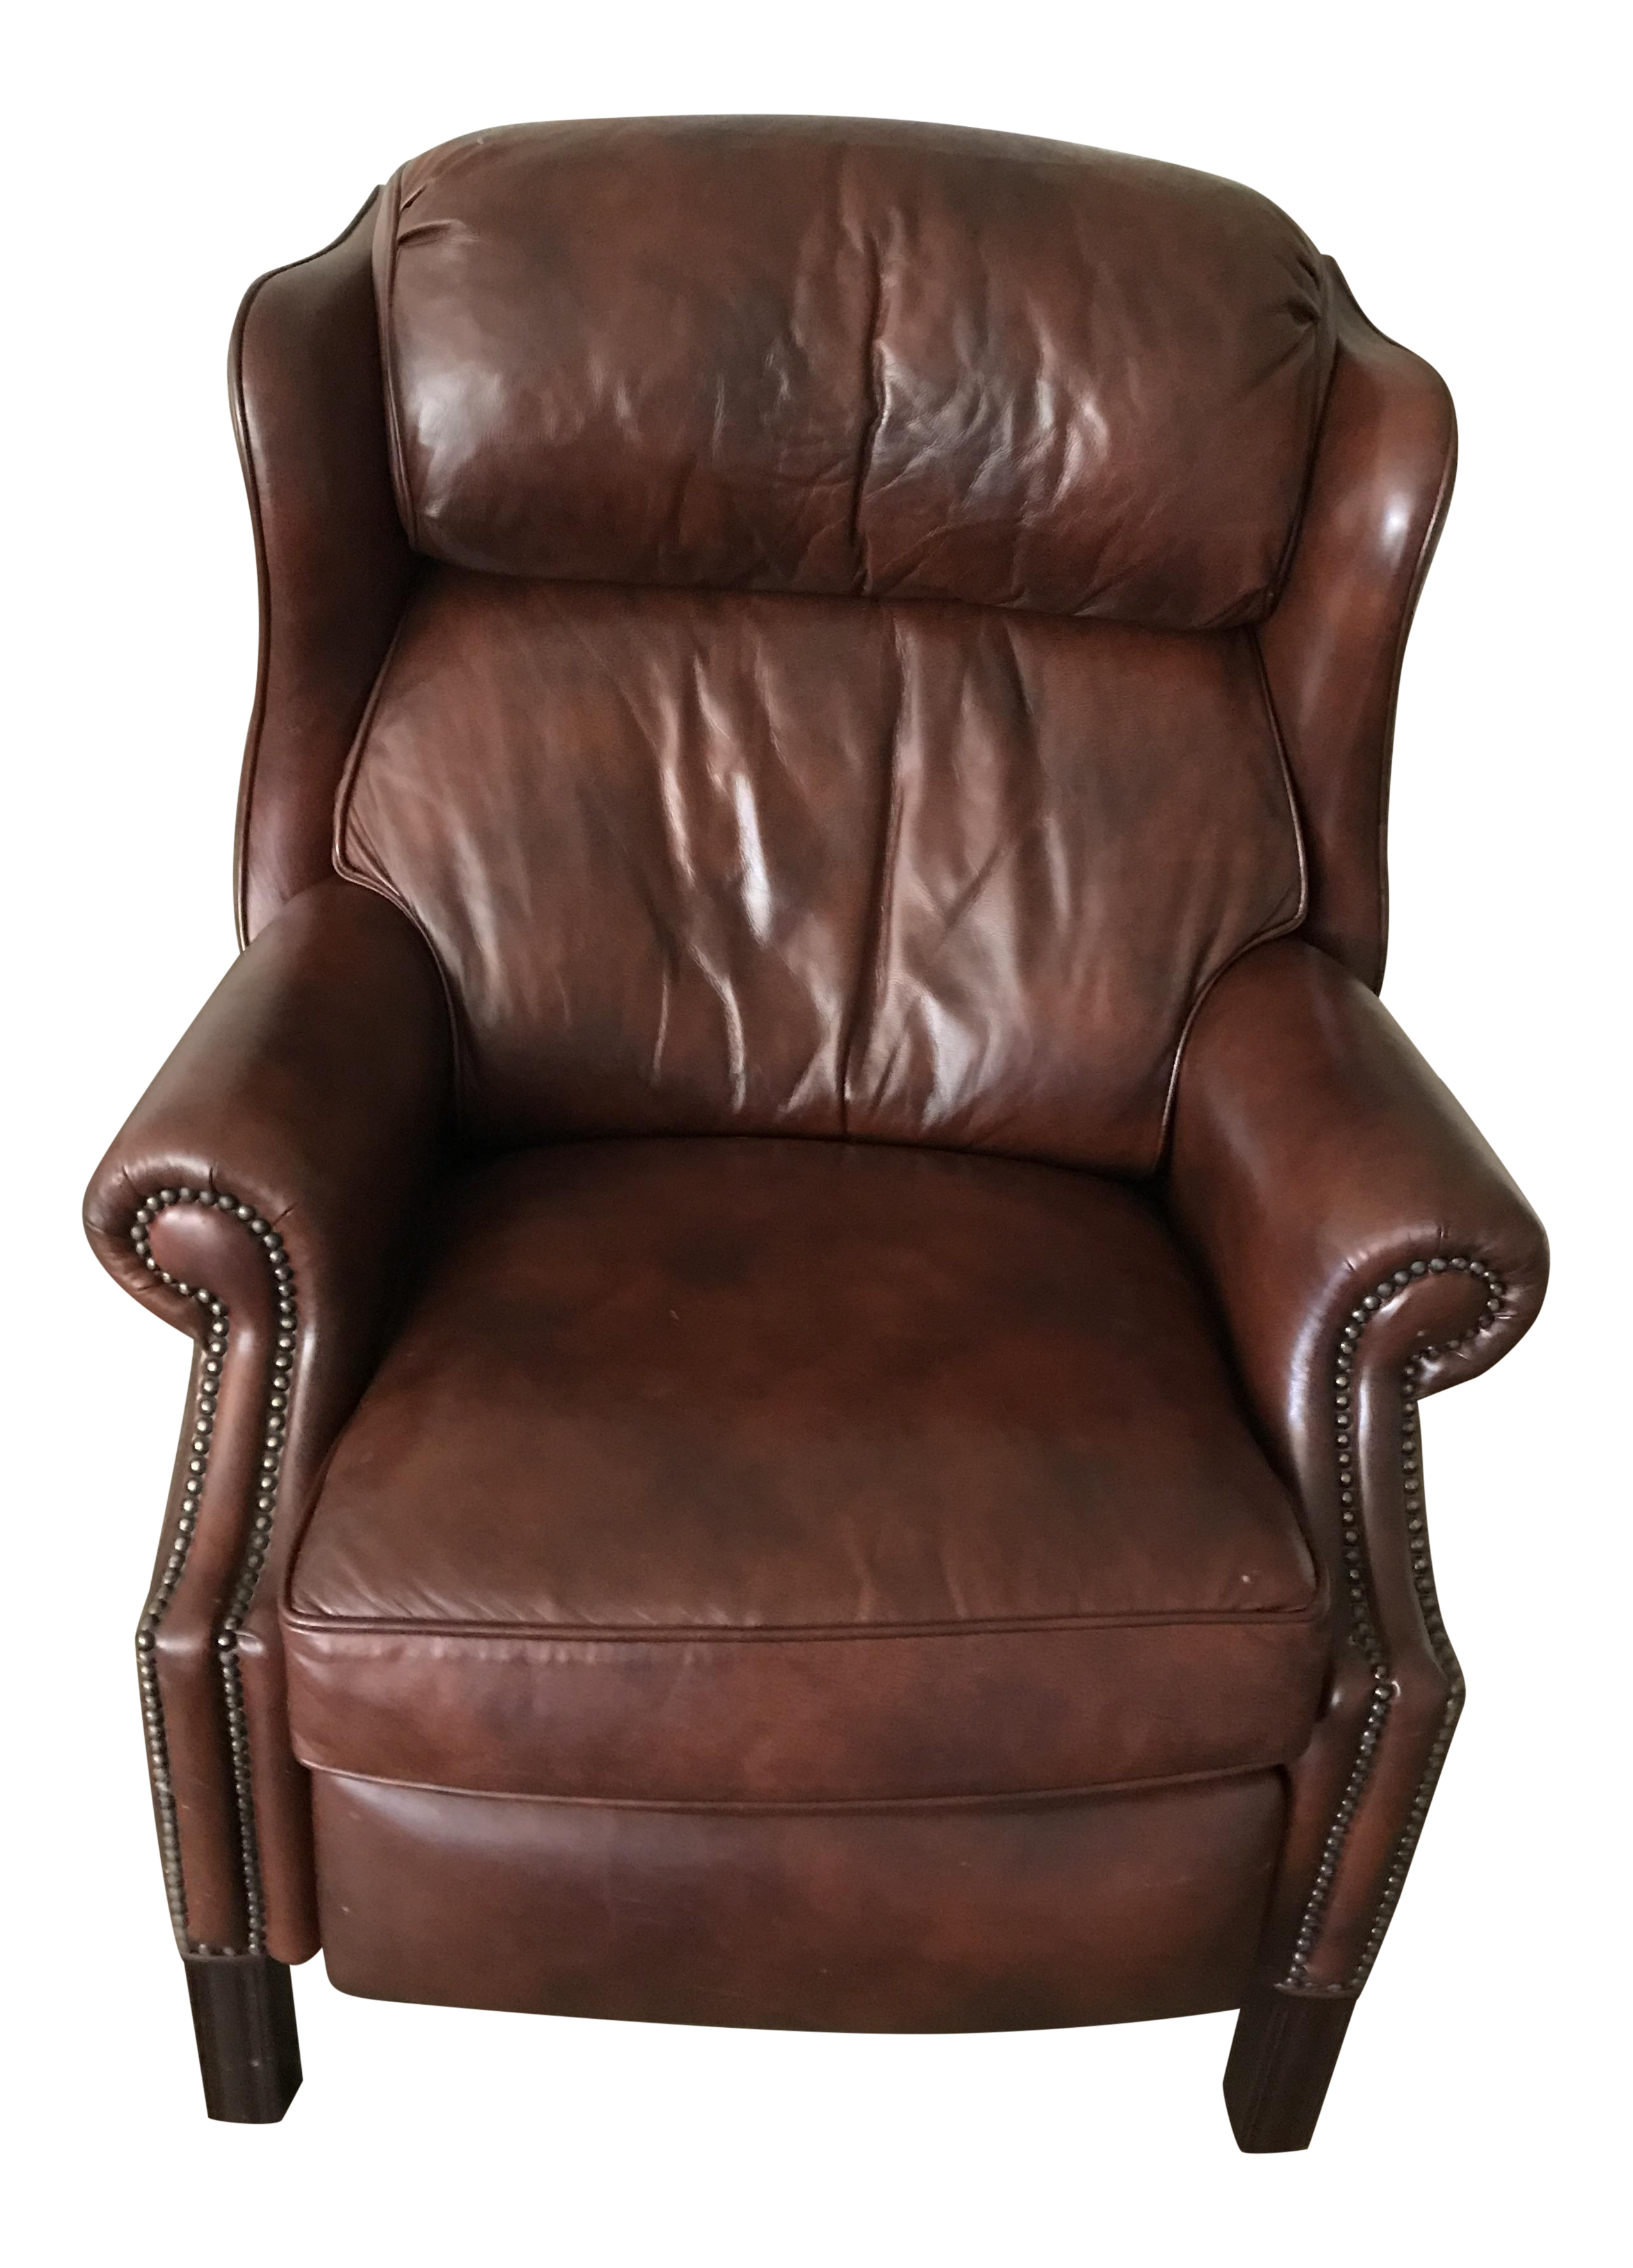 hancock & moore leather recliner | chairish